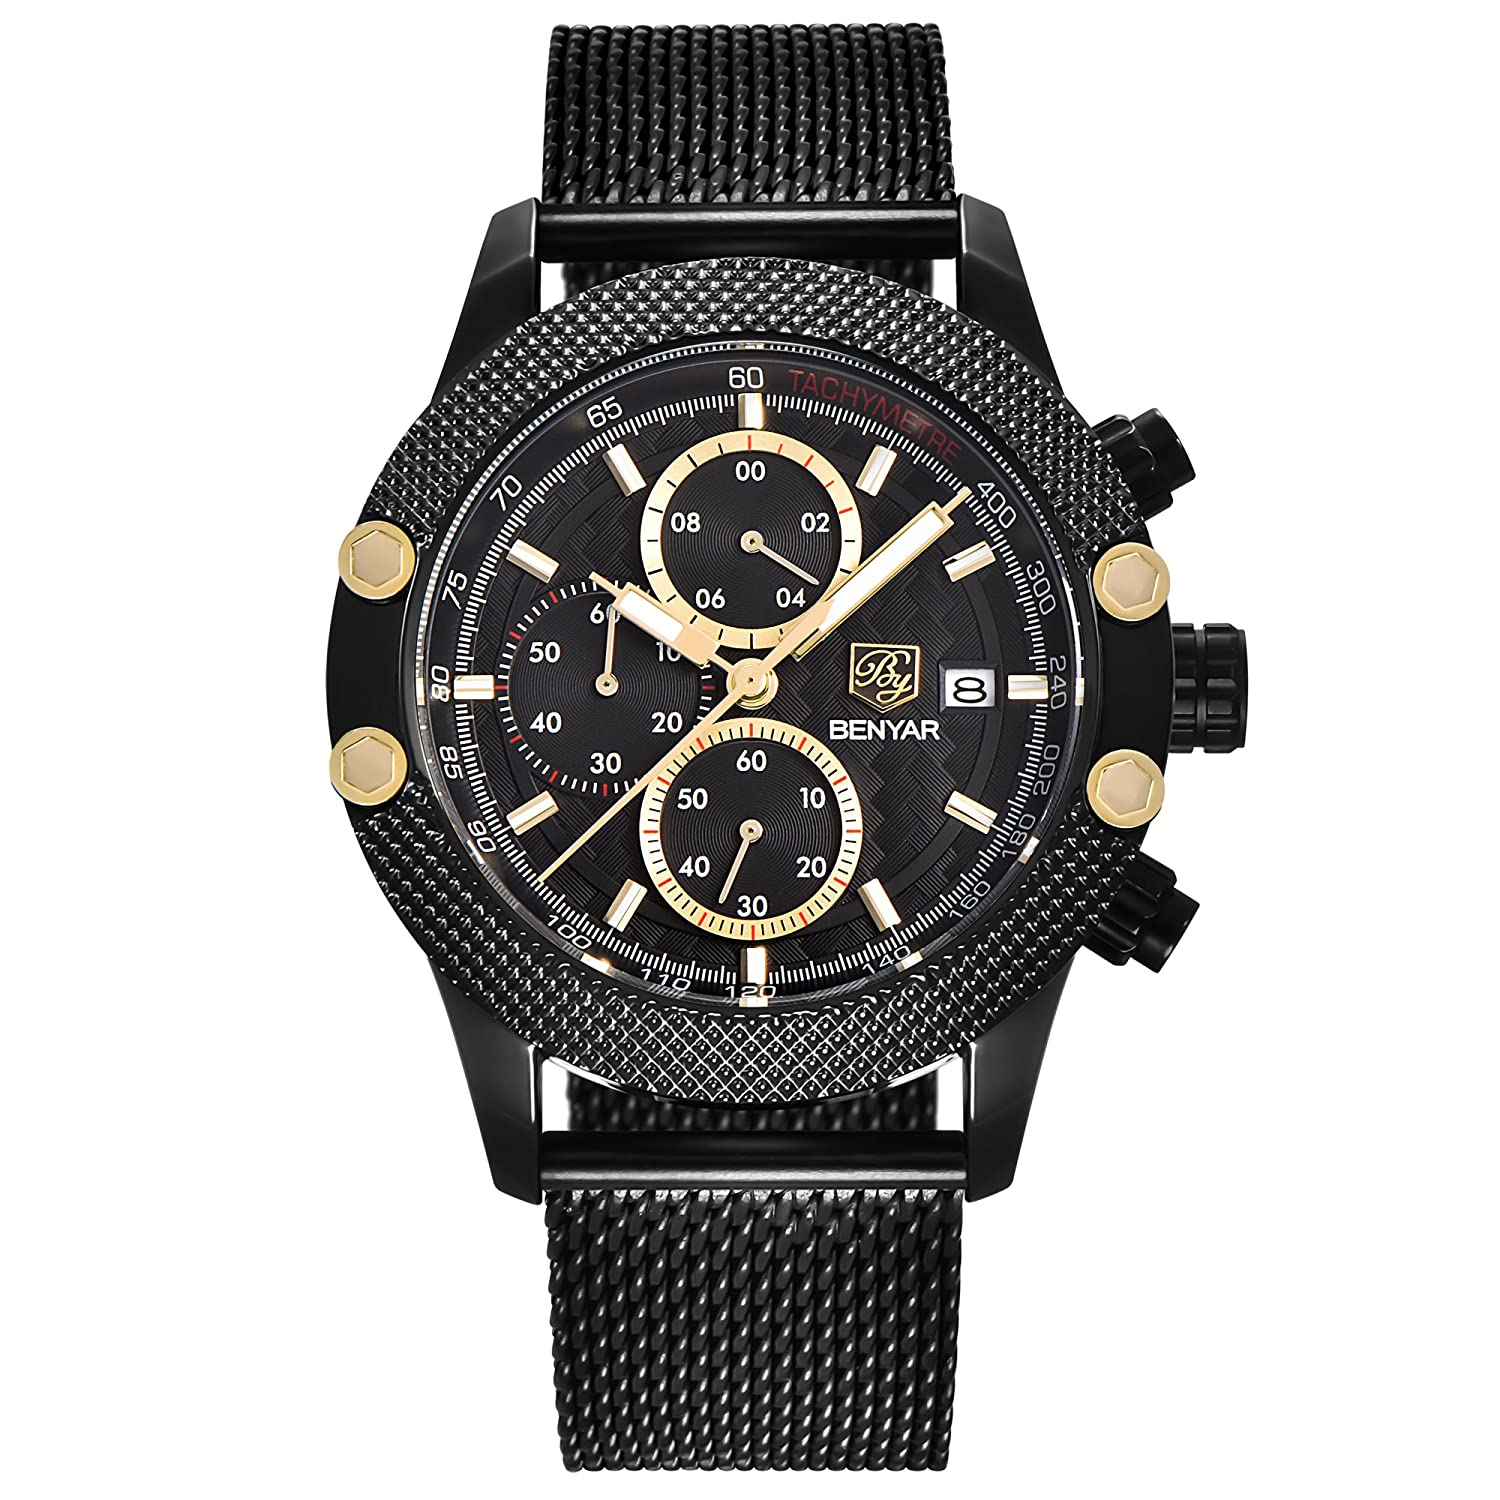 Amazon.com: BENYAR Men Watch 5109M Quartz Chronograph Waterproof Watches Business Casual Sport Mesh Band Watch(Black&Gold): Watches